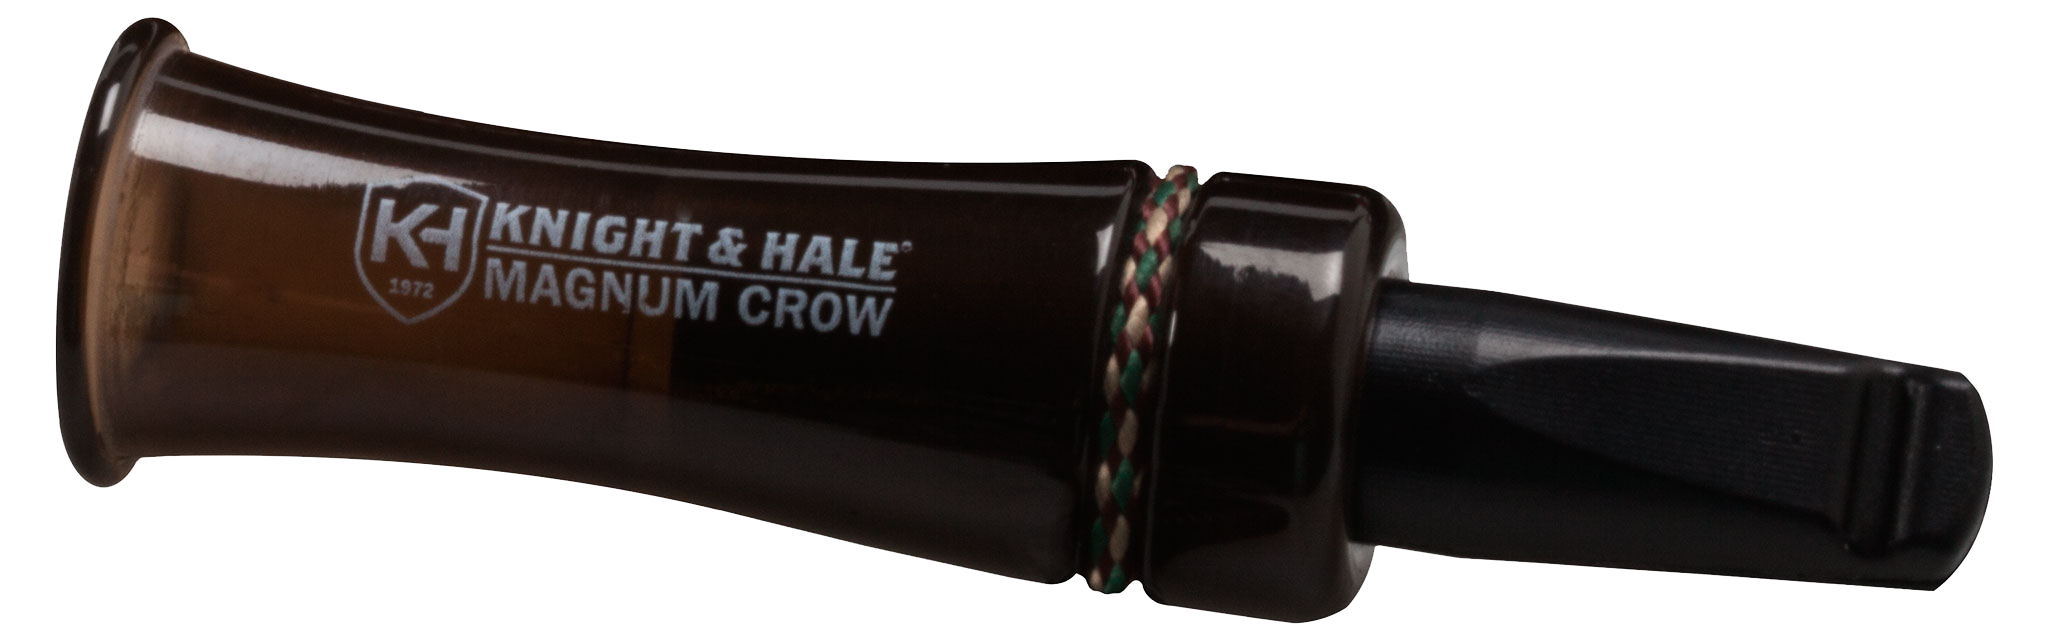 Knight & Hale KH404A Magnum Crow Turkey Call Gray